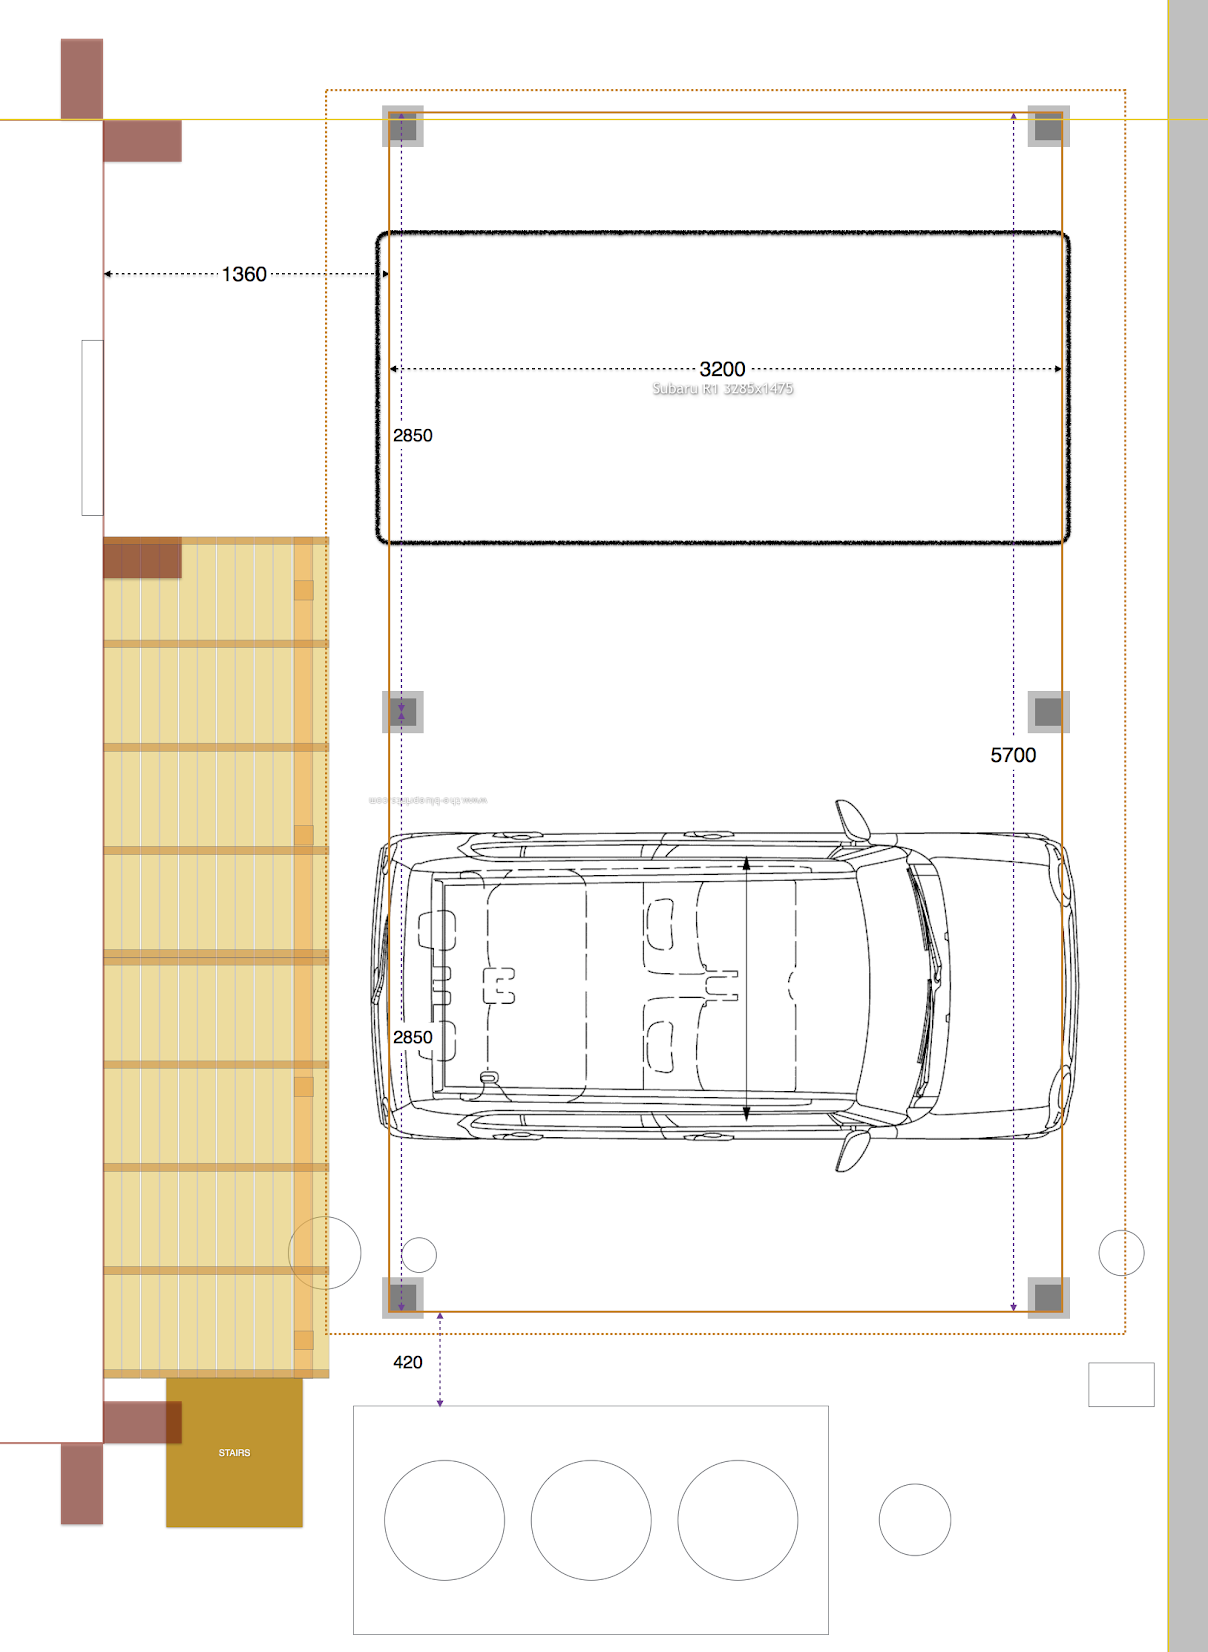 Pergola Carport Layout 2